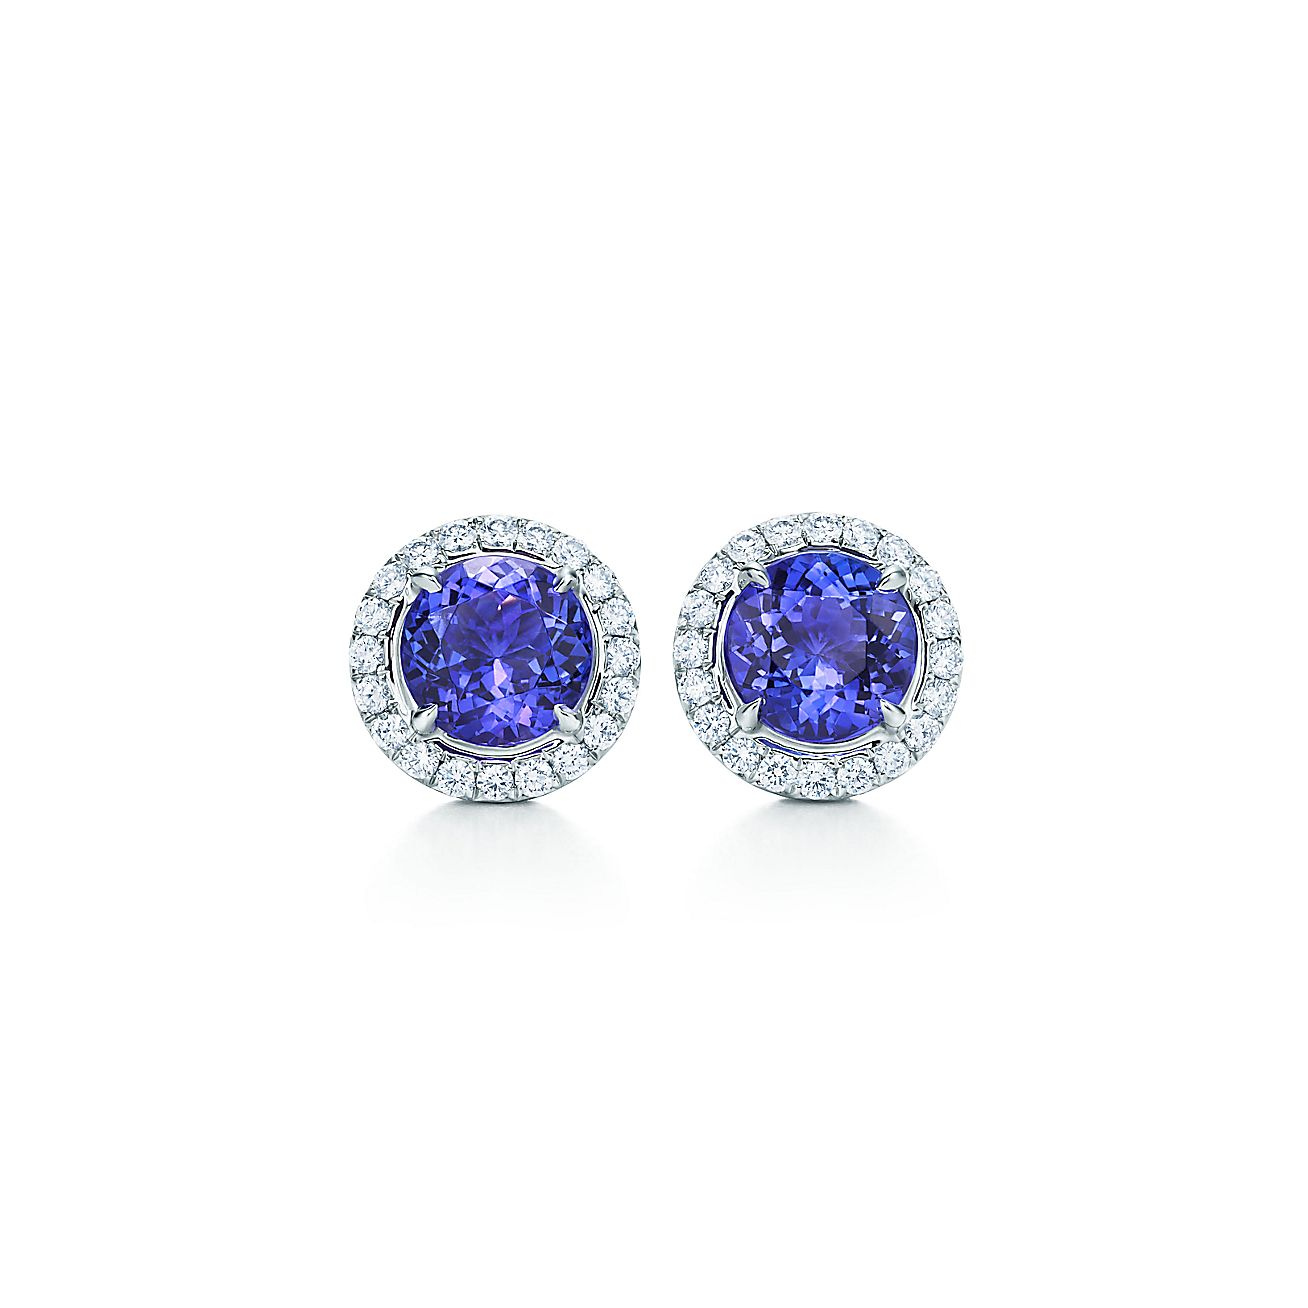 Tiffany Soleste Earrings In Platinum With Tanzanites And